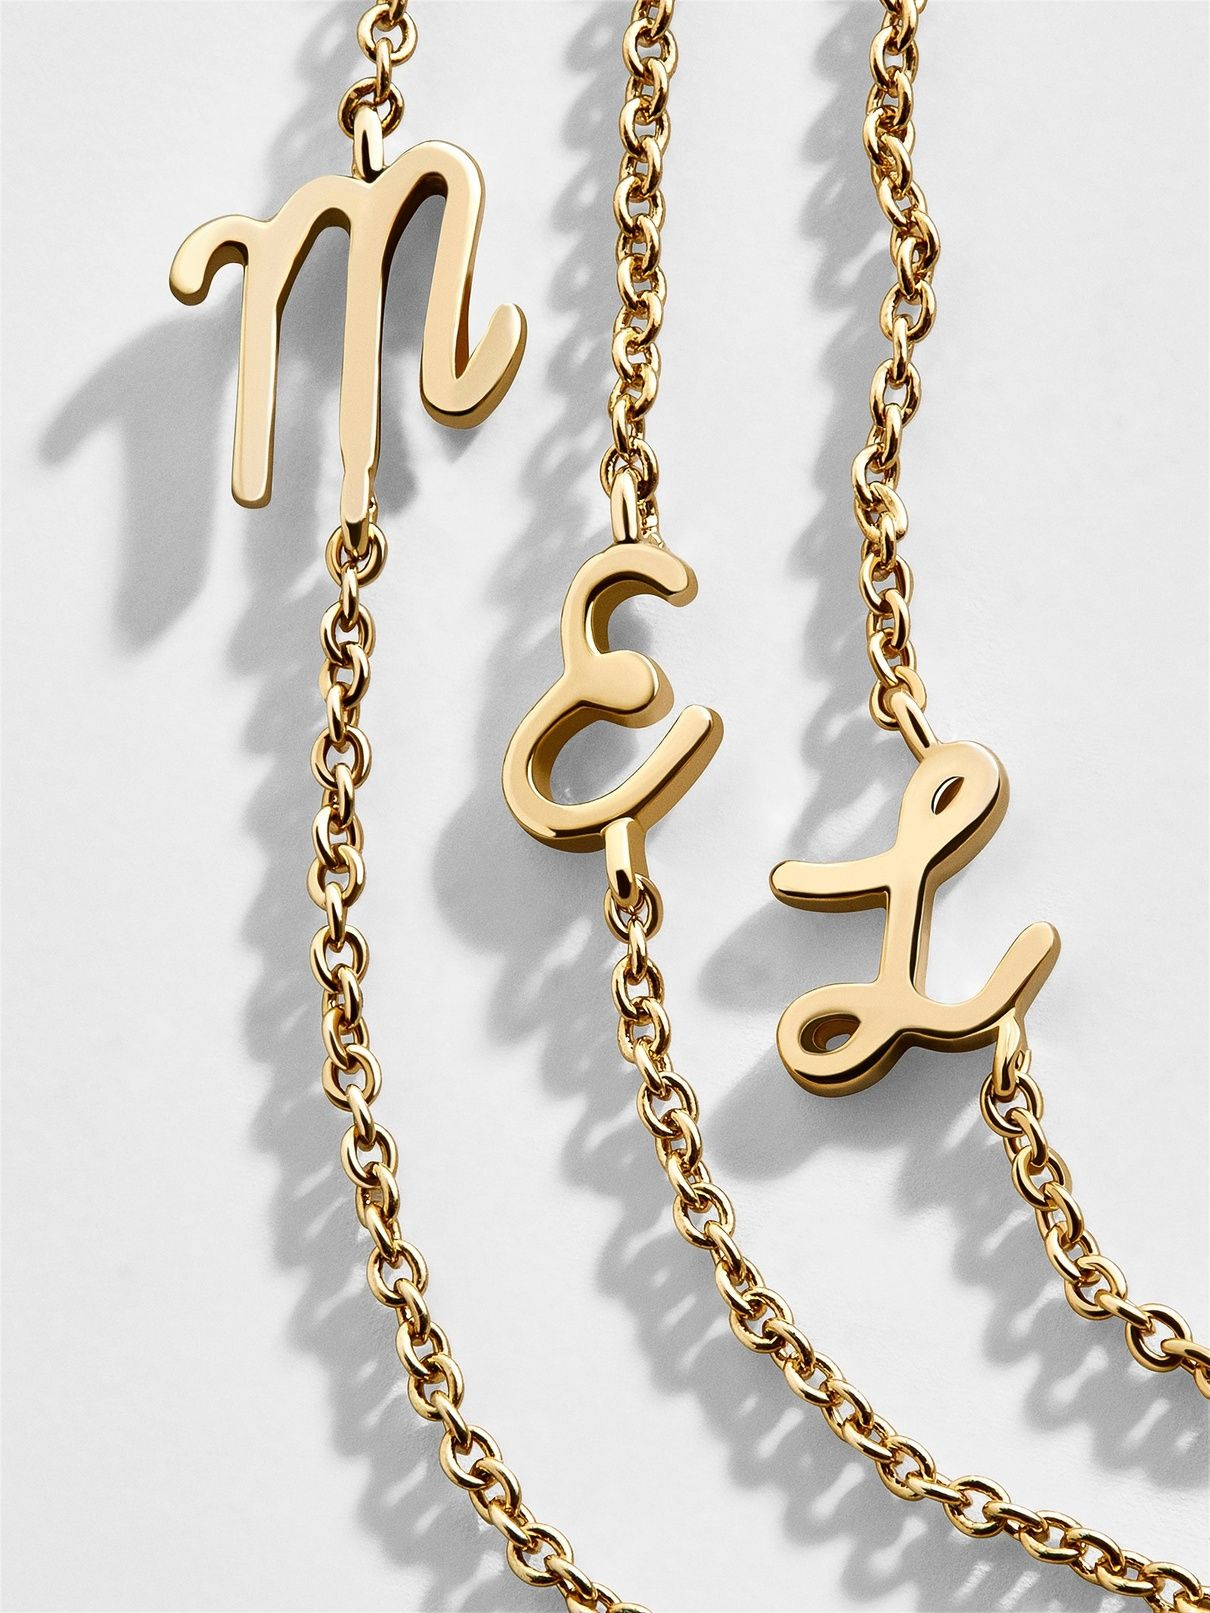 1945fddfe A delicate chain features an itty bitty initial for a chic dose of  personality. Trust